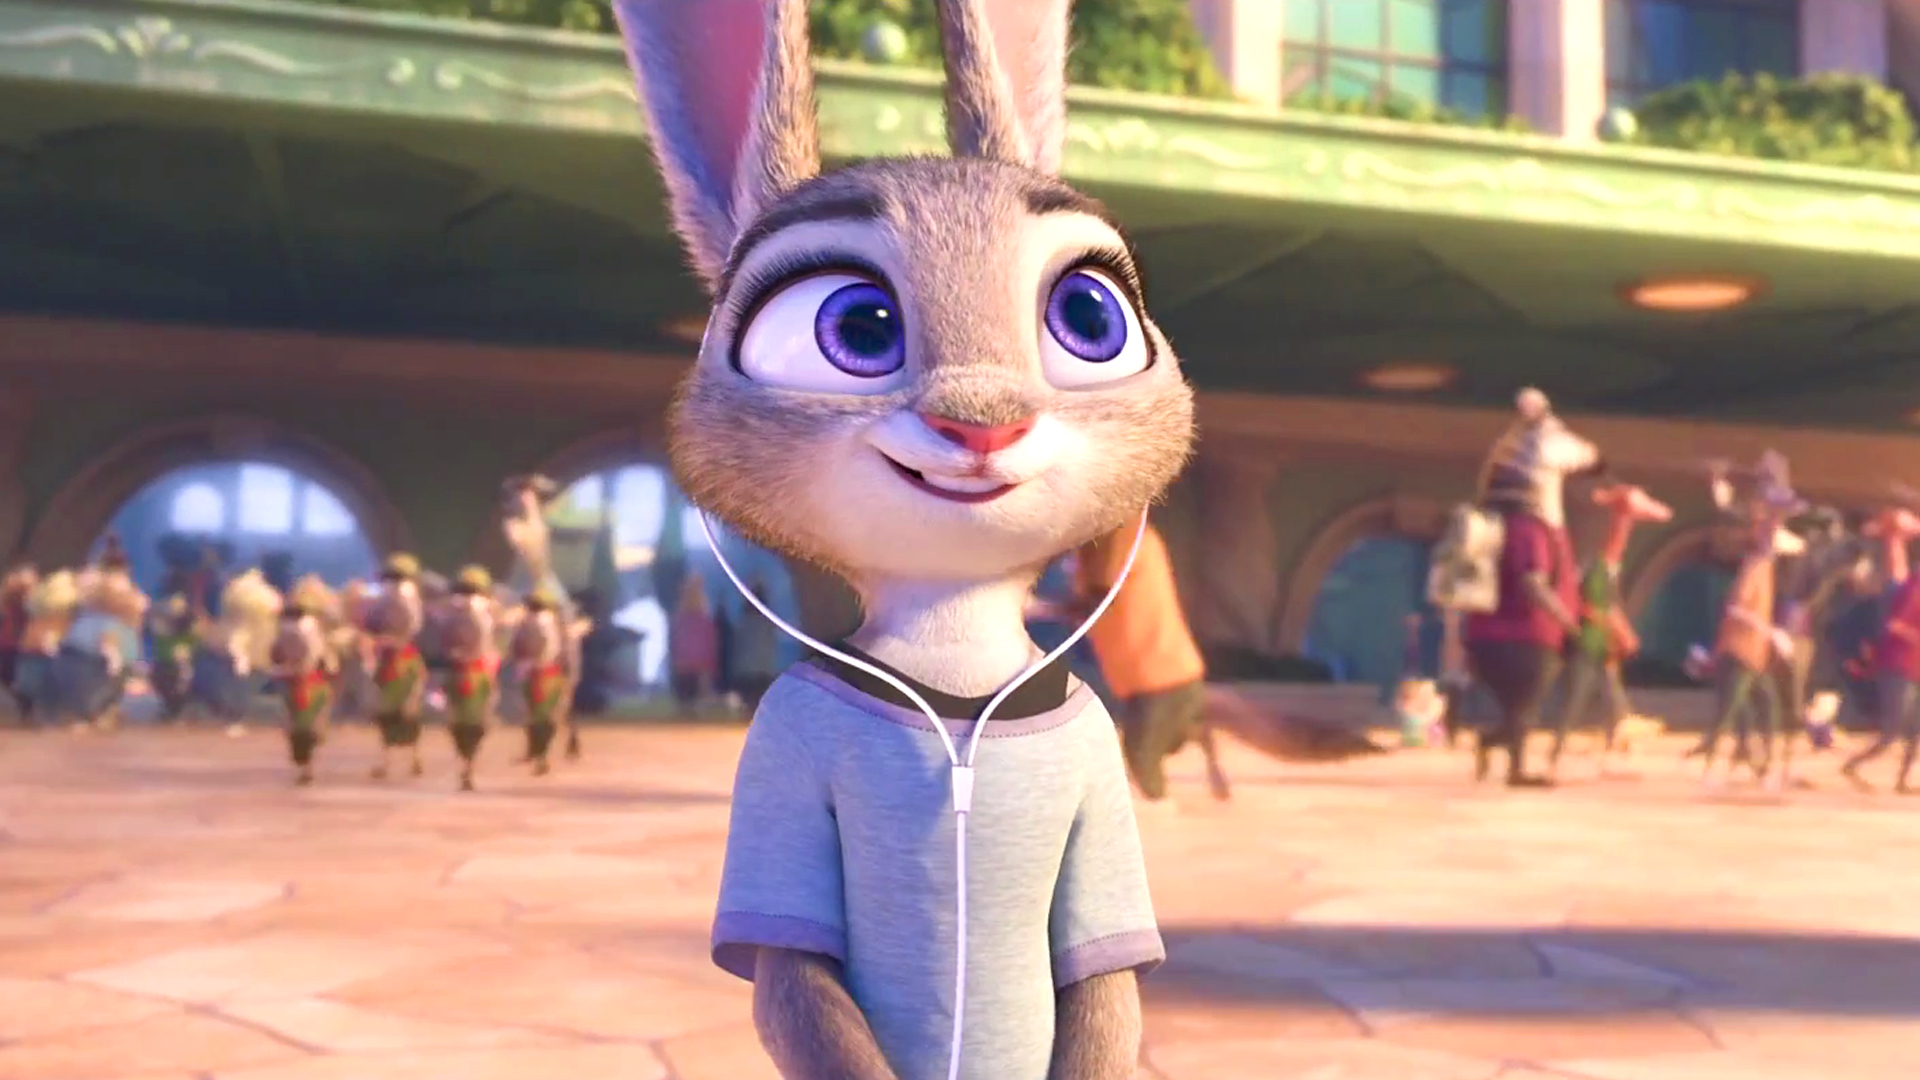 Image result for zootopia 1920x1080